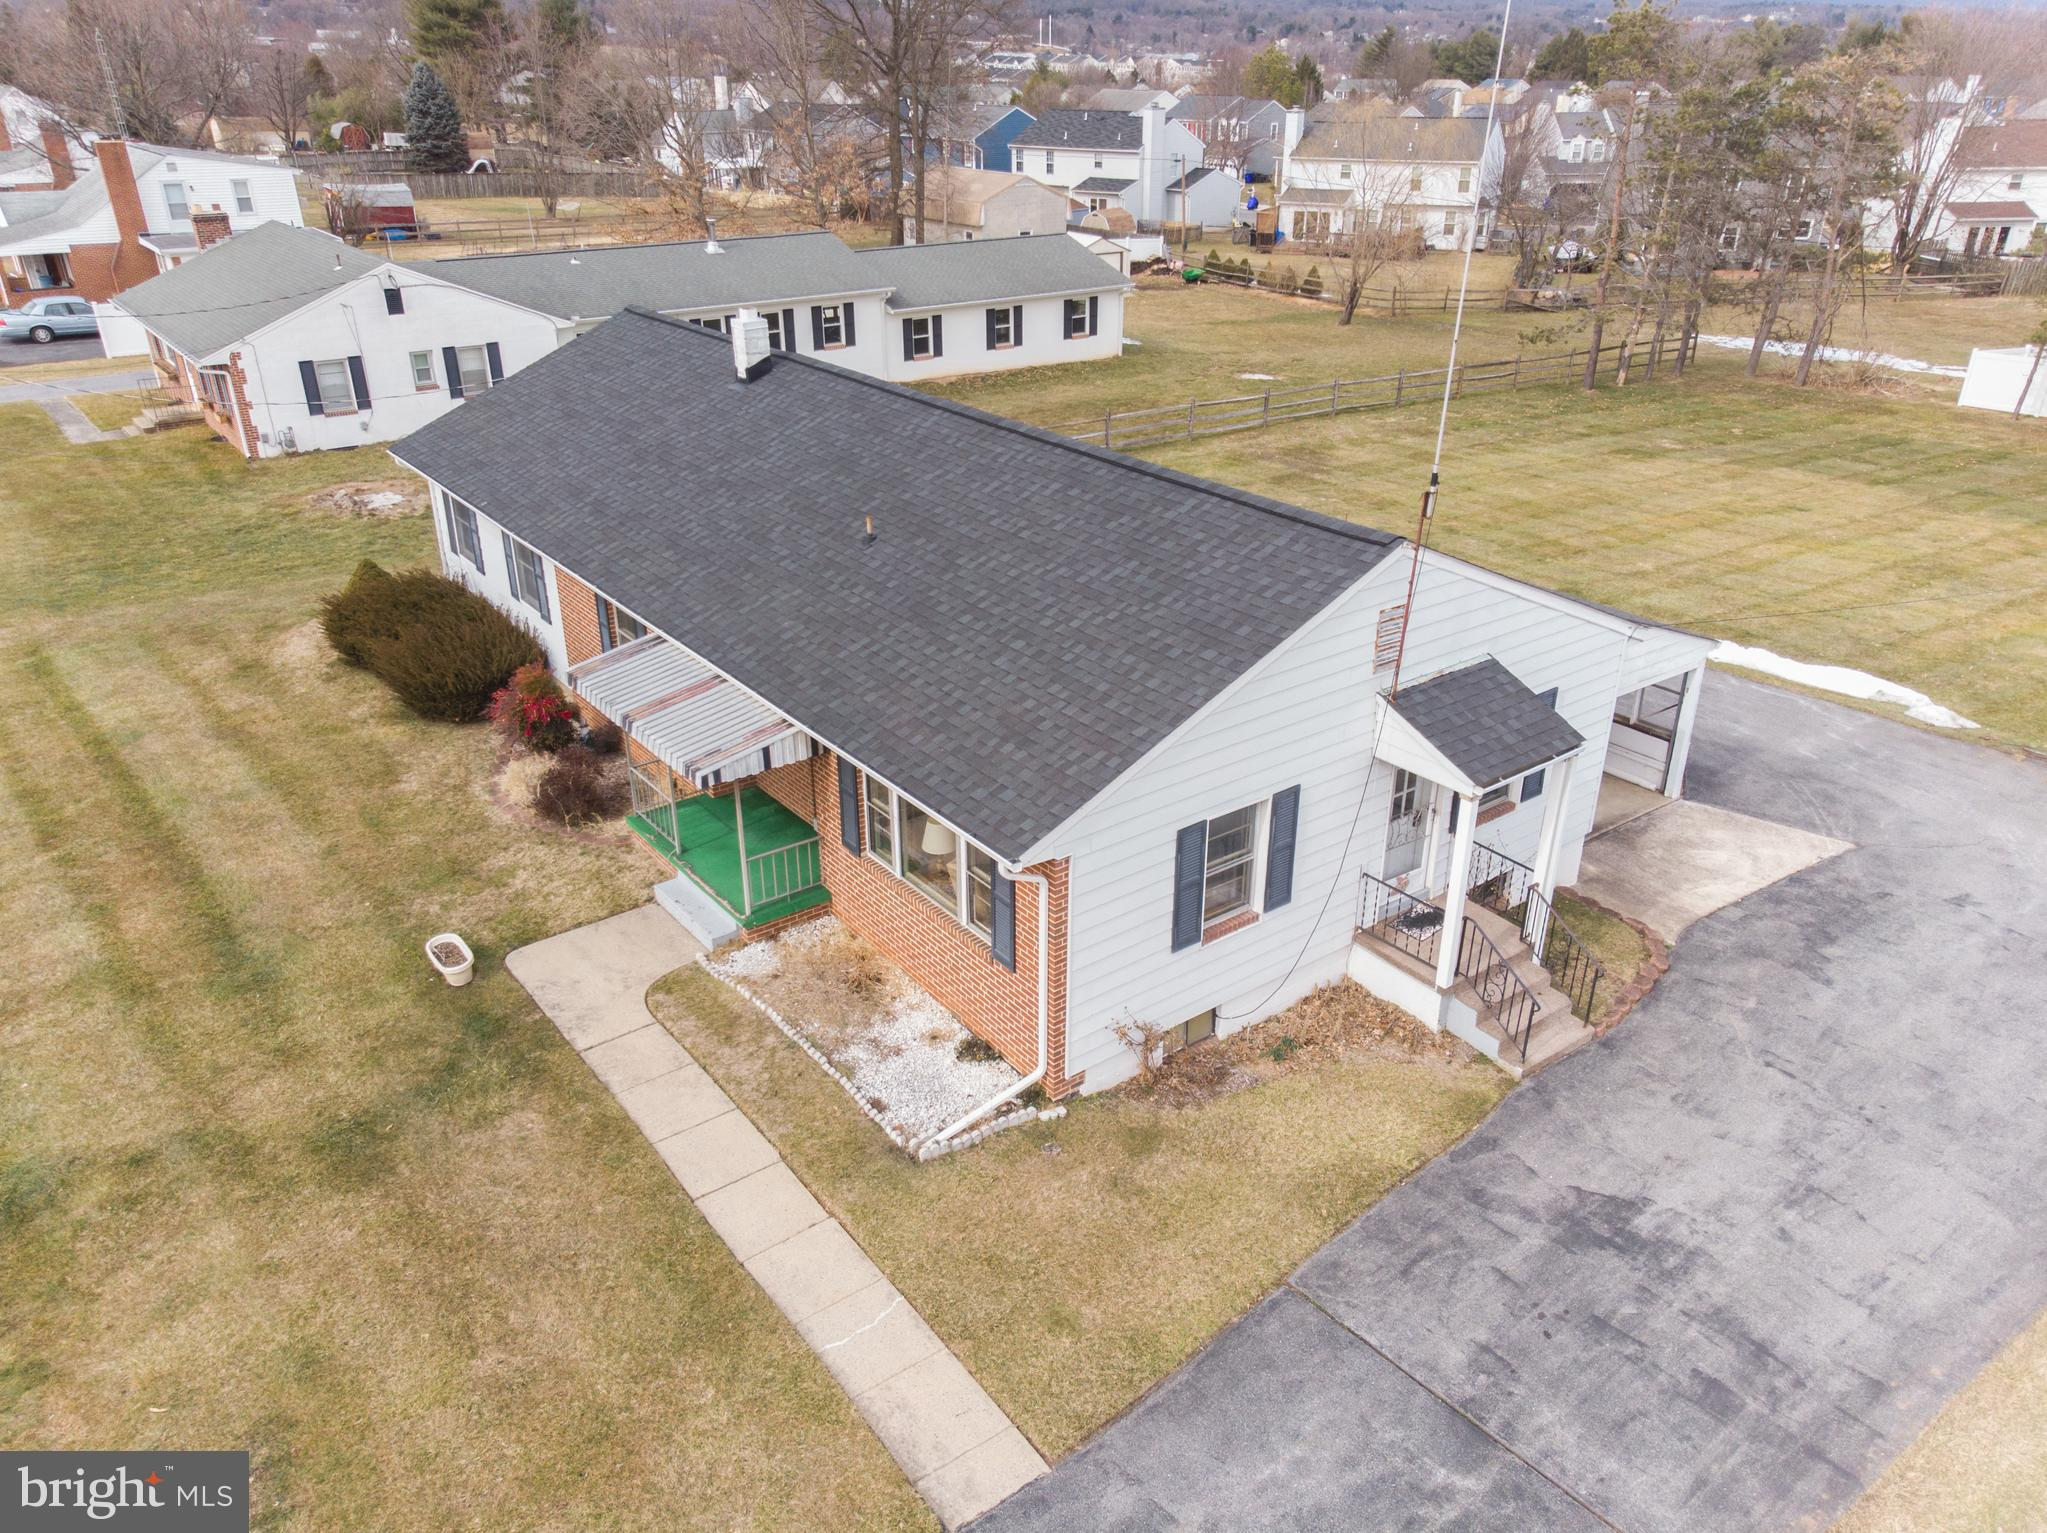 Ernie Ausherman Custom Built 4 Bedroom Rancher on a Great Lot! Walk into your spacious living room w